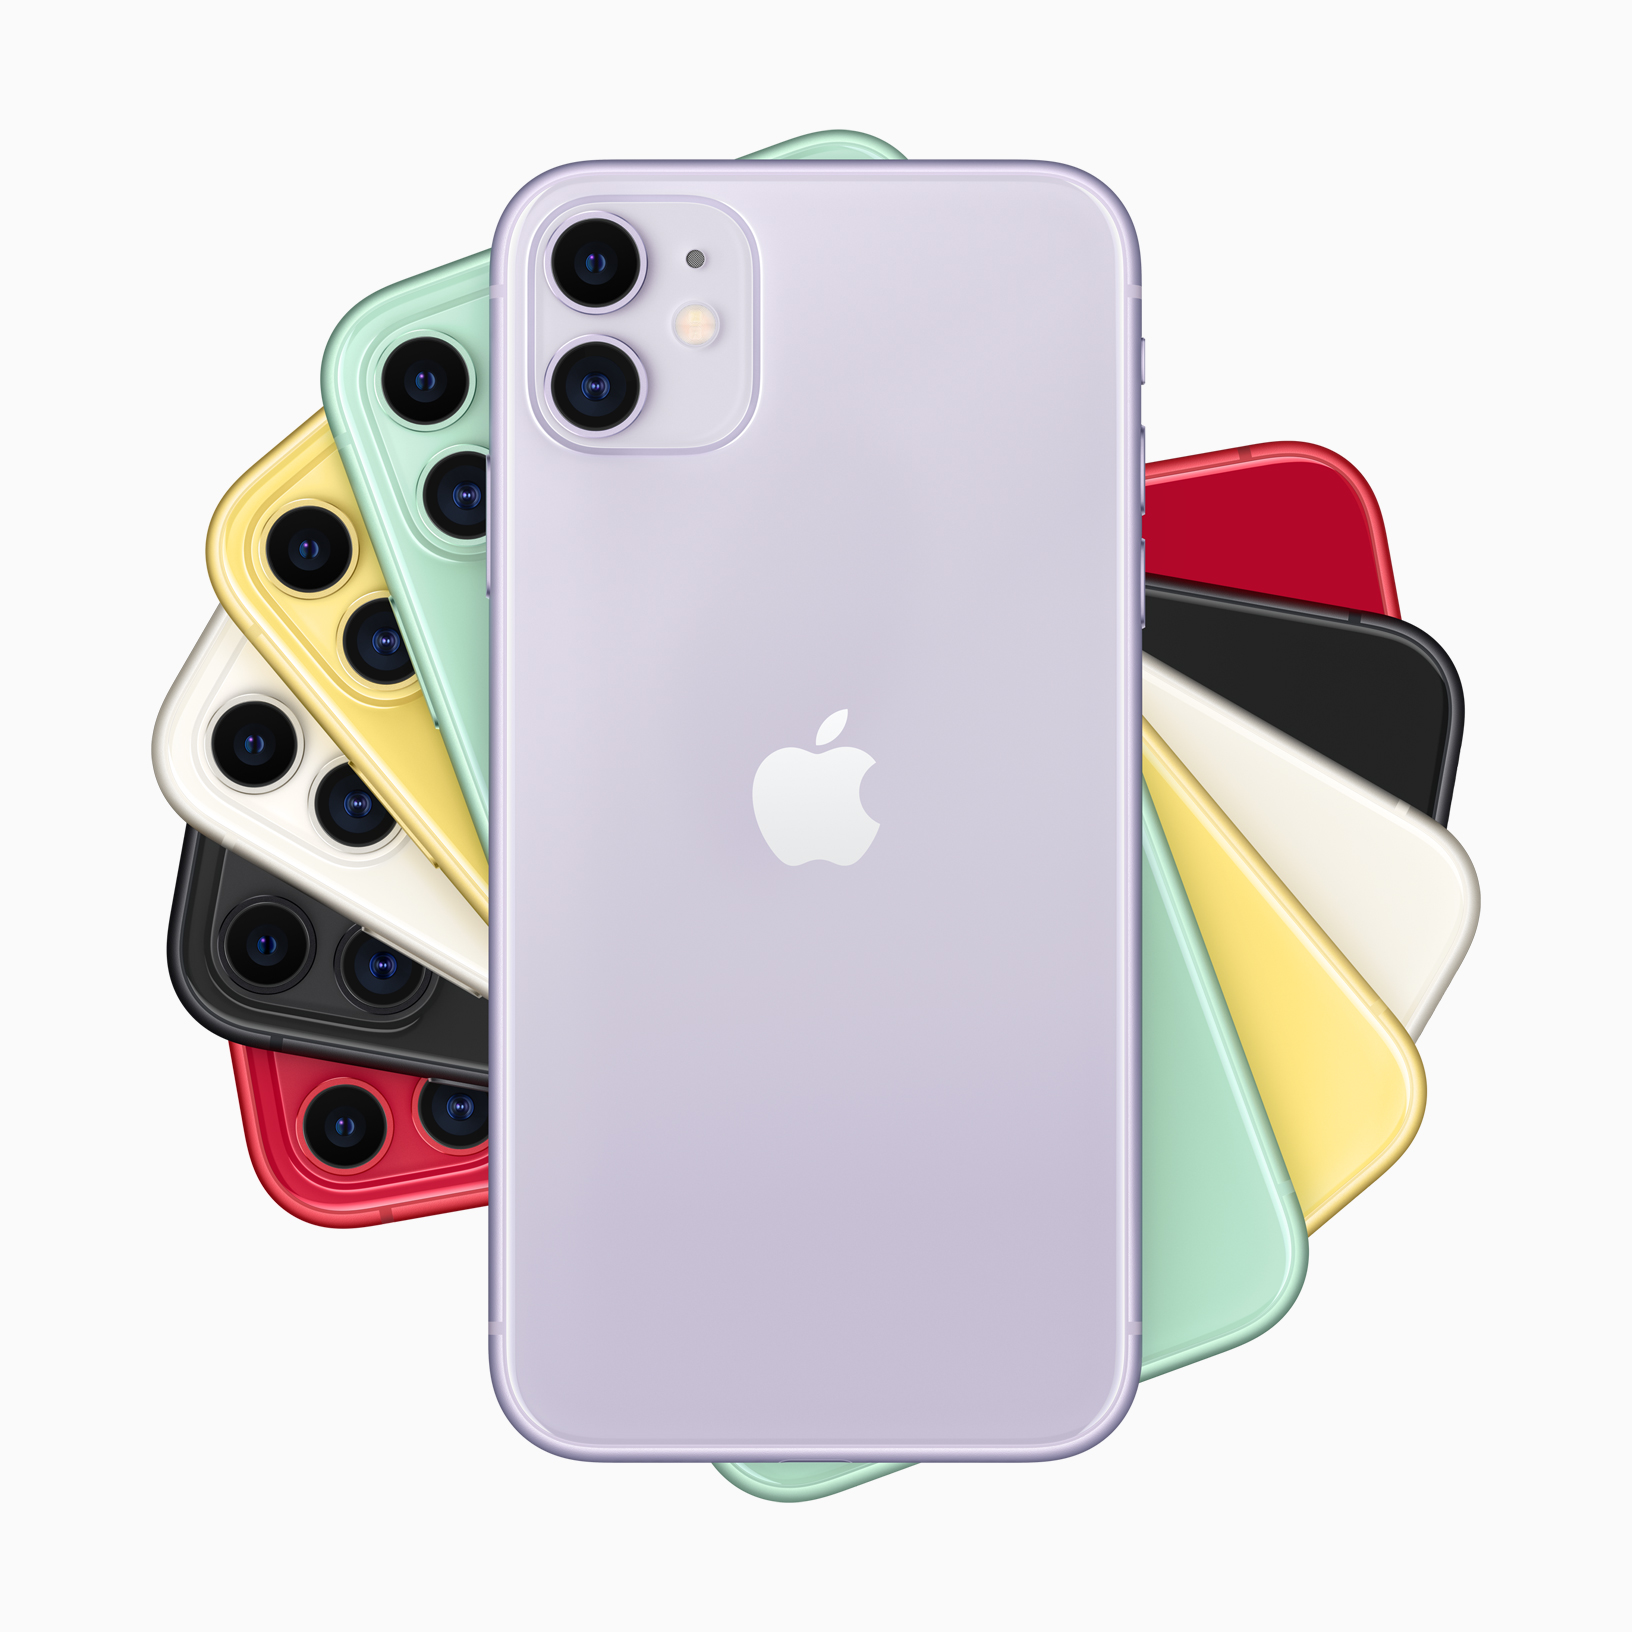 iPhone 11 advances the most popular smartphone in the world with meaningful innovations that touch areas customers see and use every day. (Image via Apple)